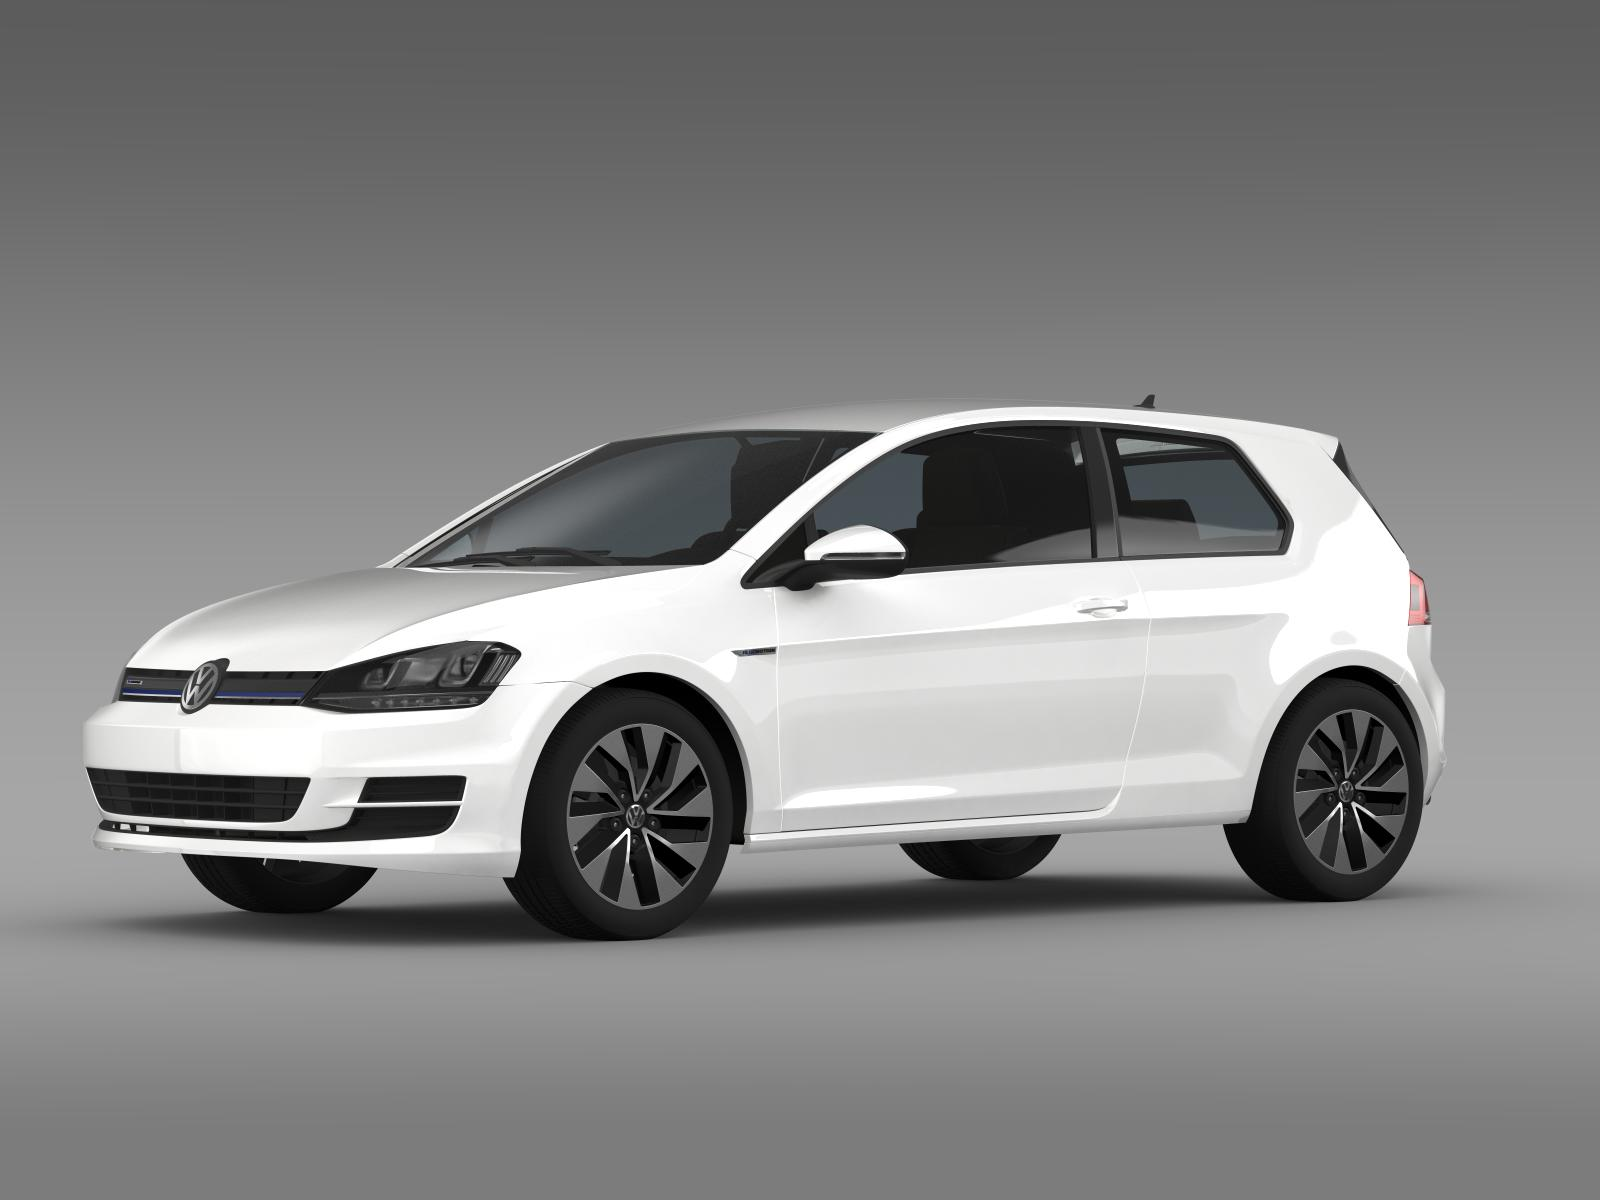 vw golf tdi bluemotion 3 door 2015 3d model. Black Bedroom Furniture Sets. Home Design Ideas